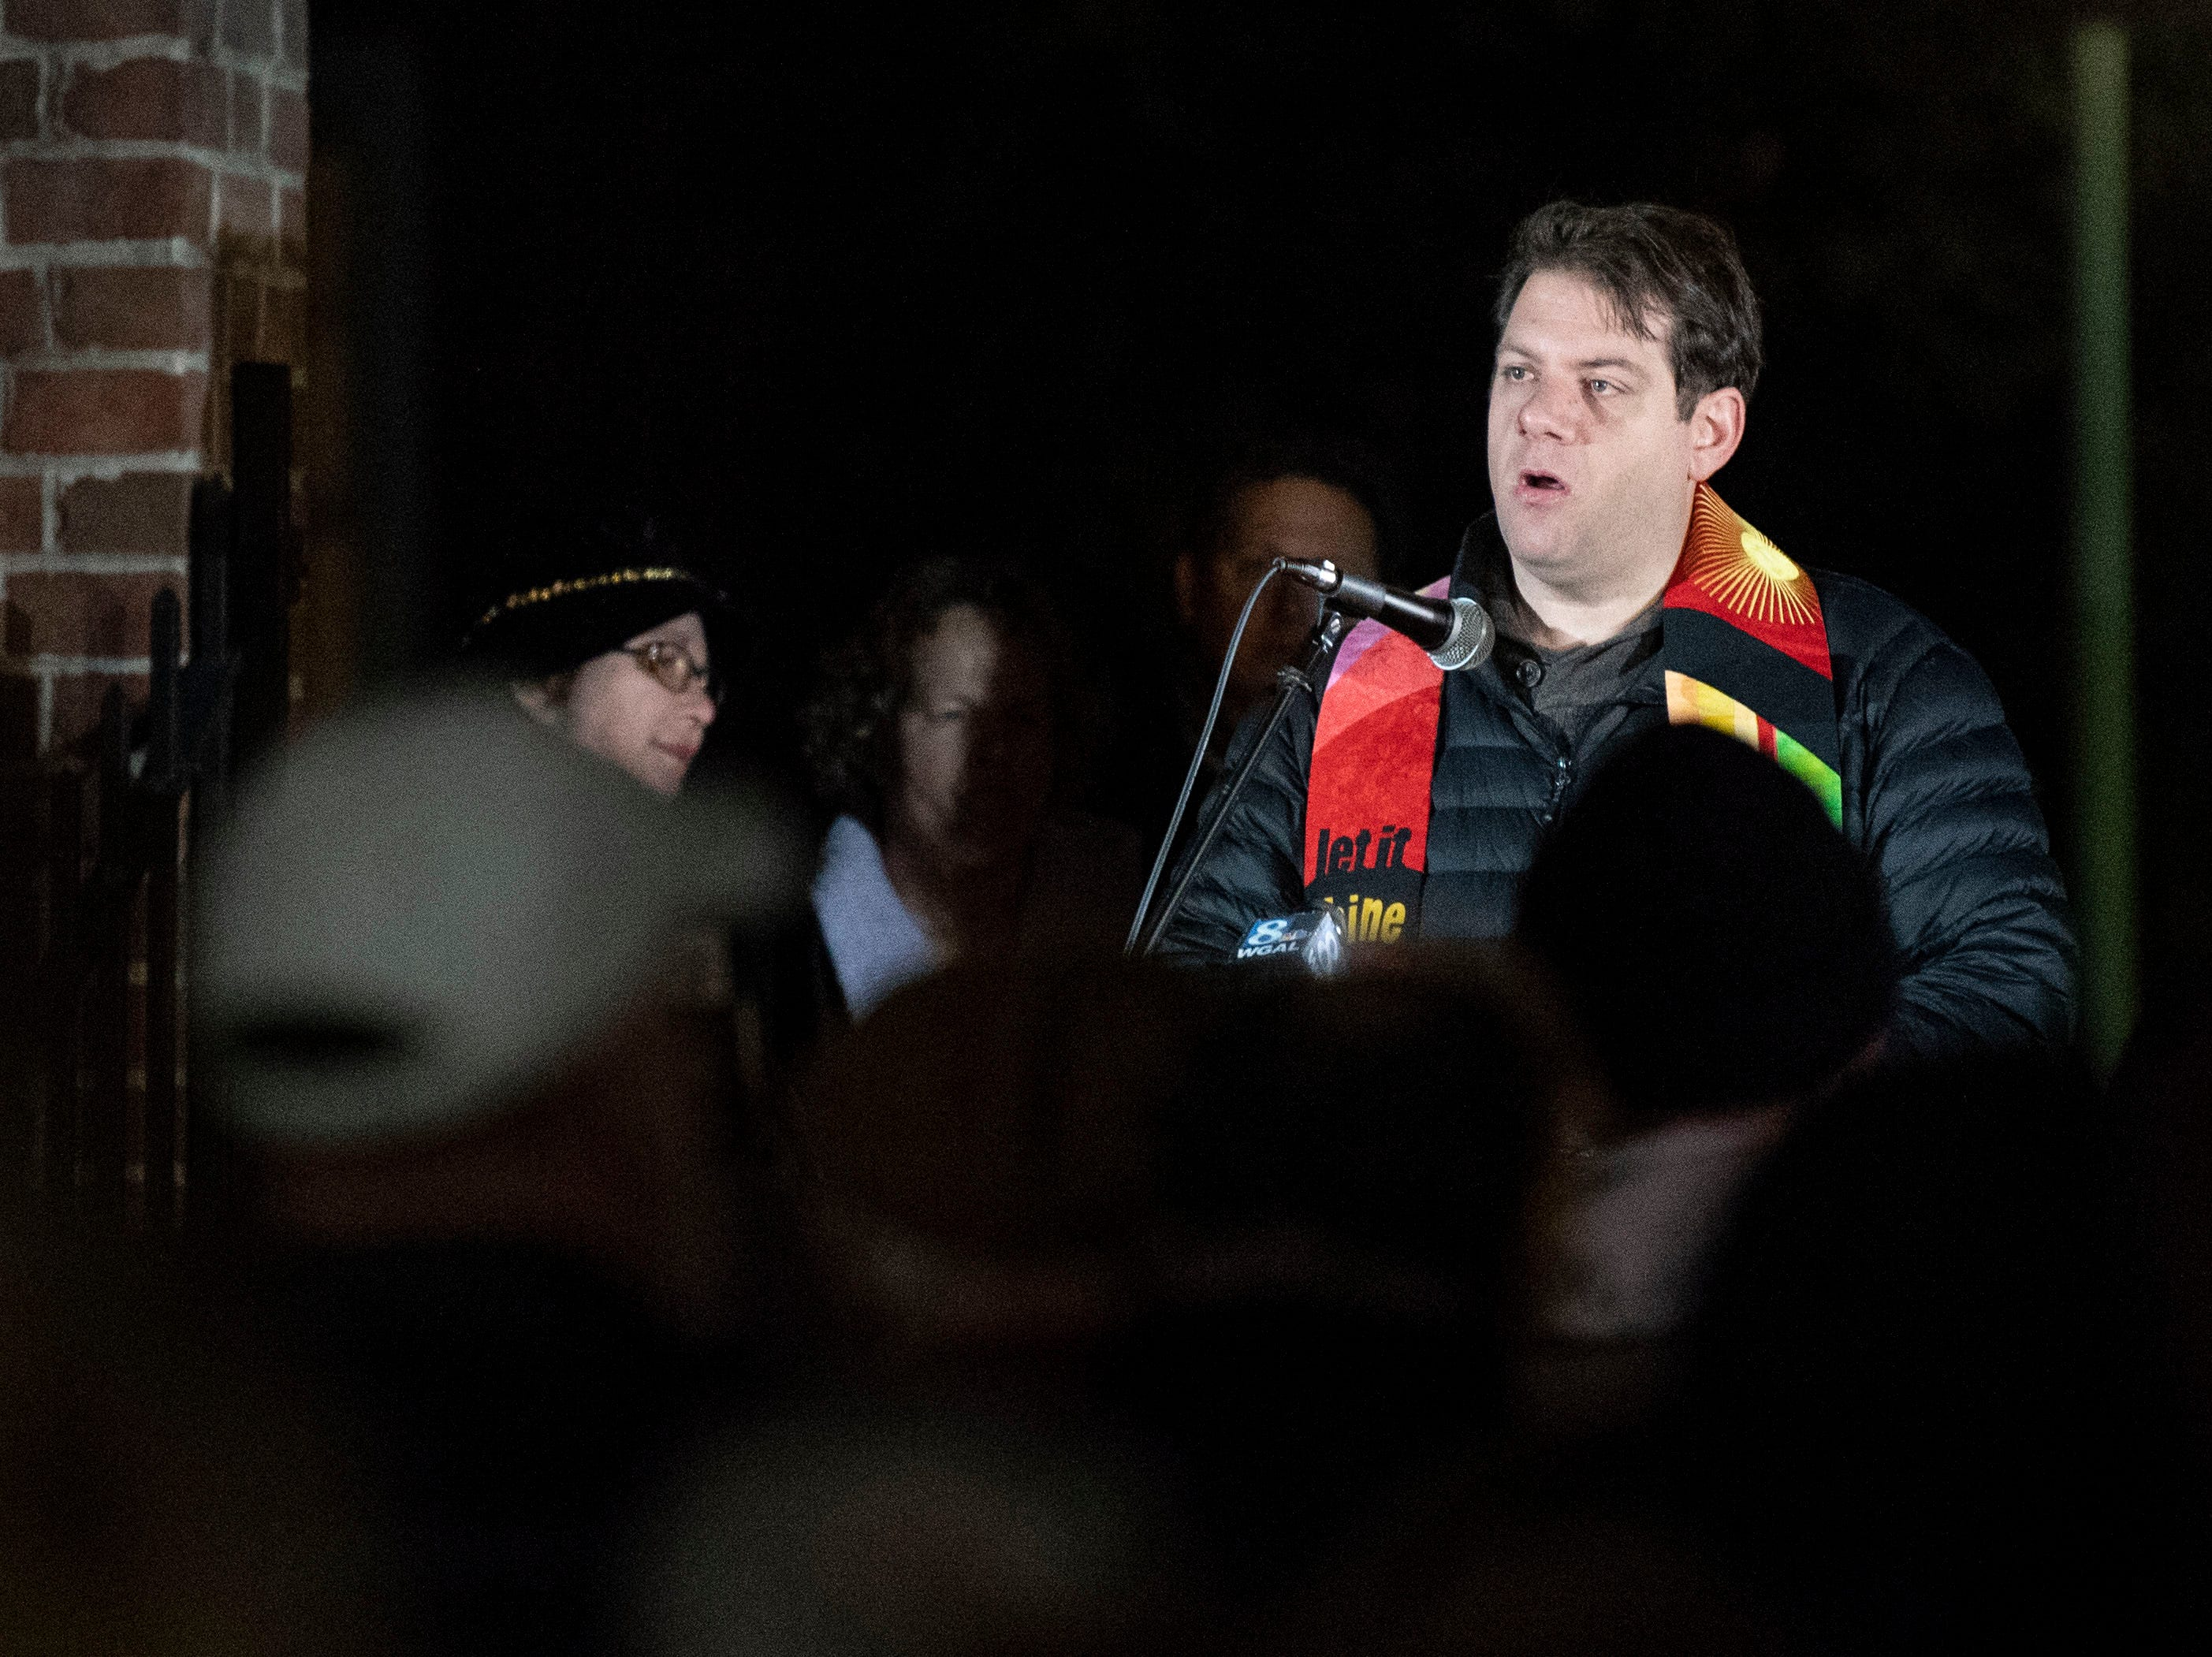 Reverand Christopher Rodkey, of St. Paul United Church of Christ, in Dallastown, speaks during a candlelight vigil in front of city hall on Monday, Oct. 29, 2018. Hundreds of people gathered for the 'York Vigil against Hate,' mourning the 11 dead from the weekend shooting at Tree of Life synagogue in Pittsburgh.